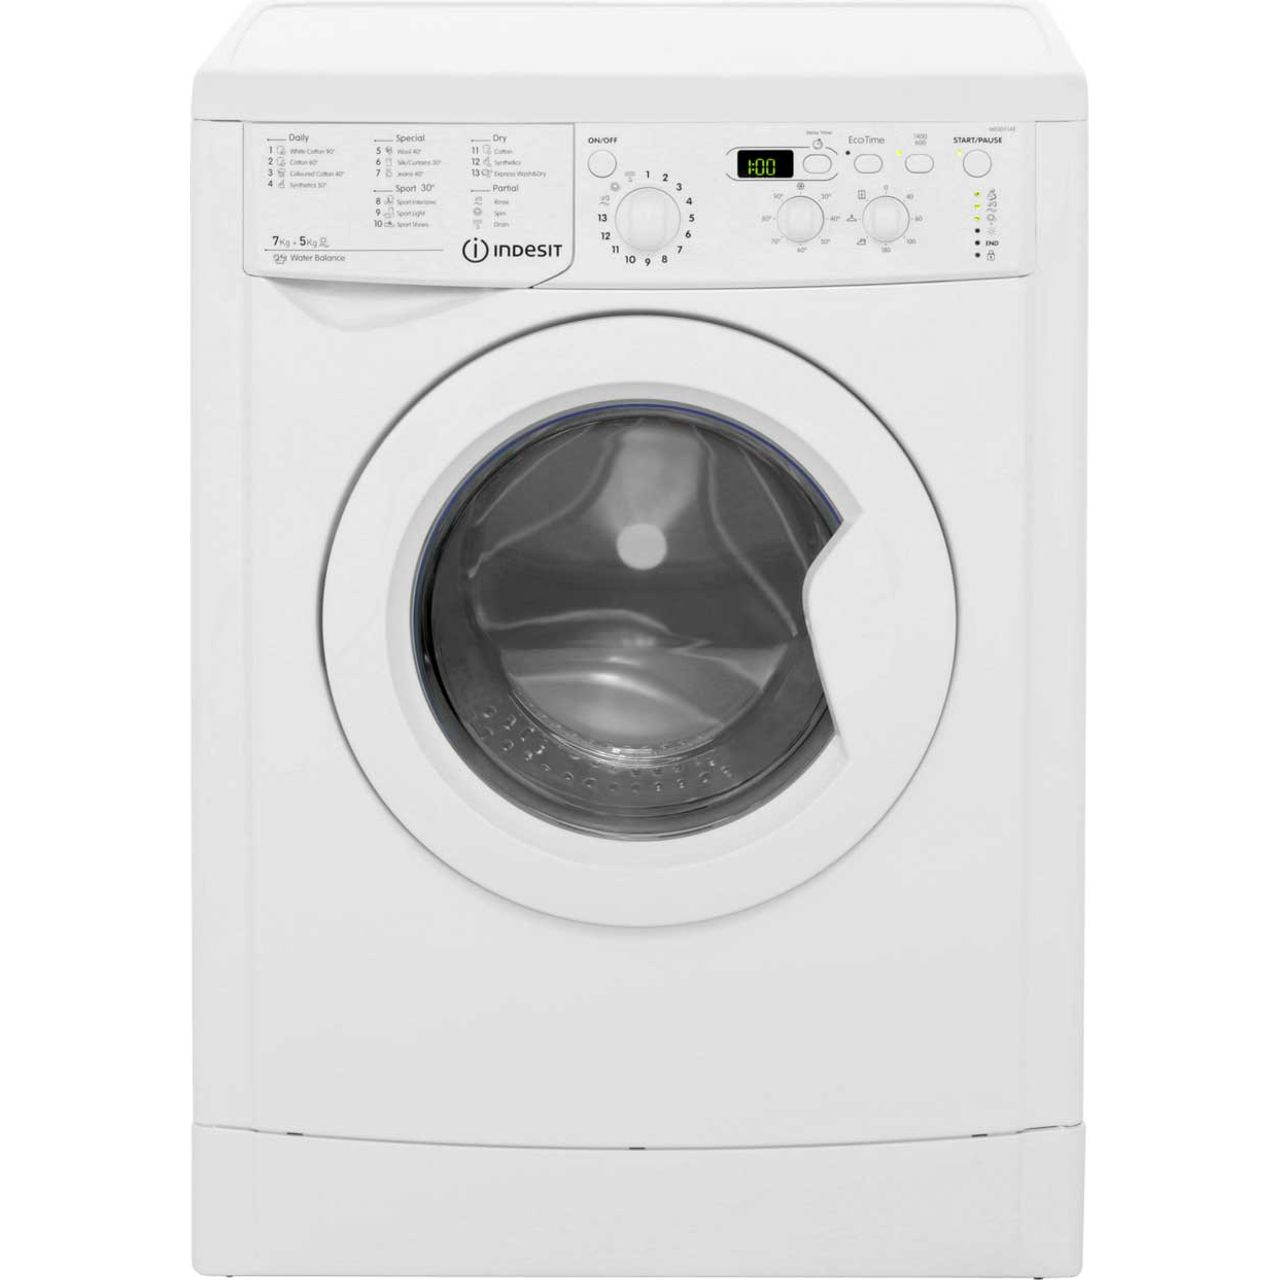 Indesit IWDD7143 7Kg / 5Kg Washer Dryer with 1400 rpm - White